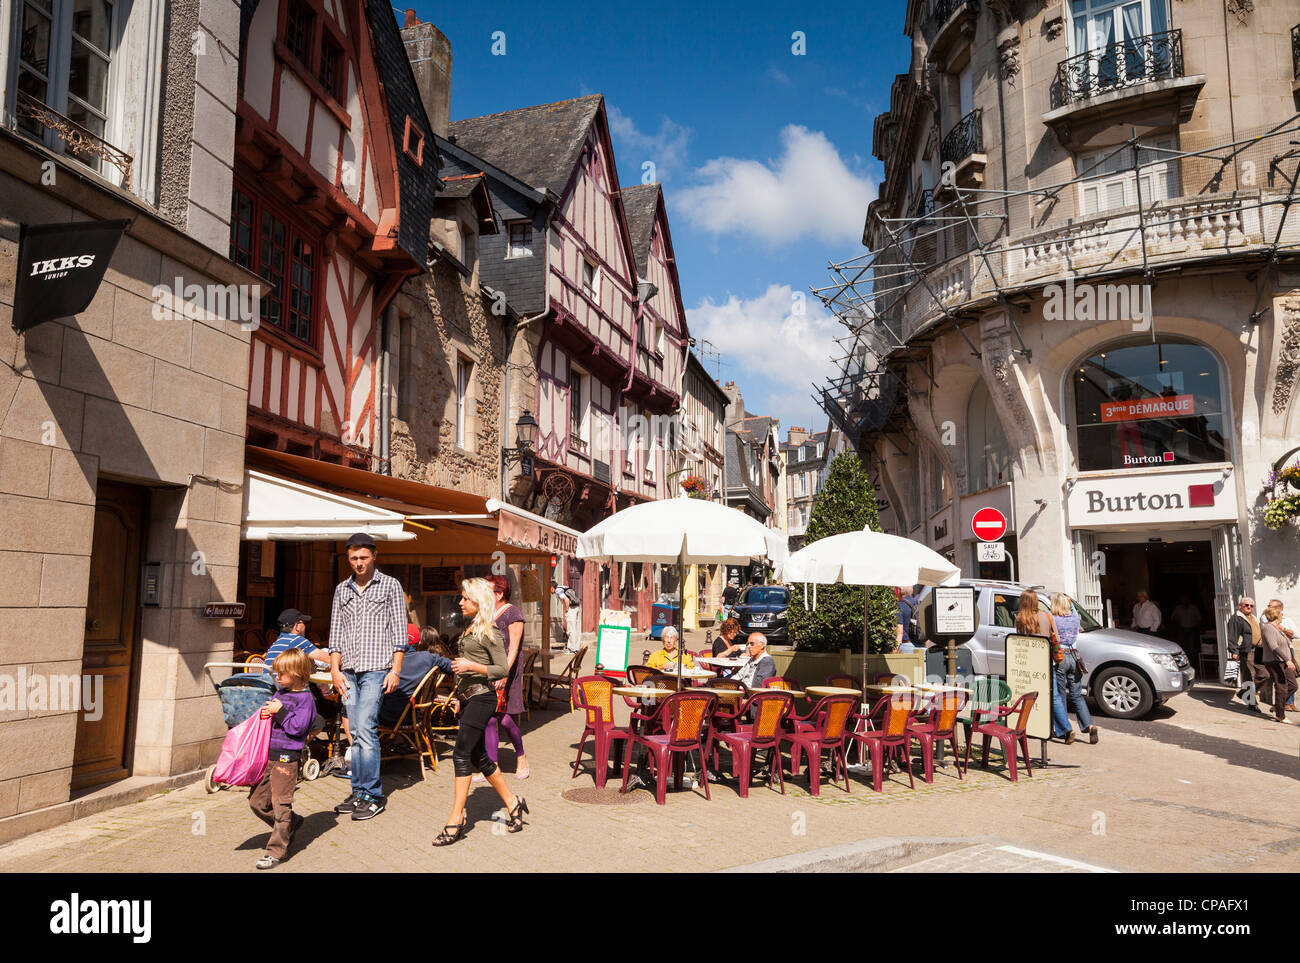 Street scene in the old city of Vannes, Brittany, France. - Stock Image